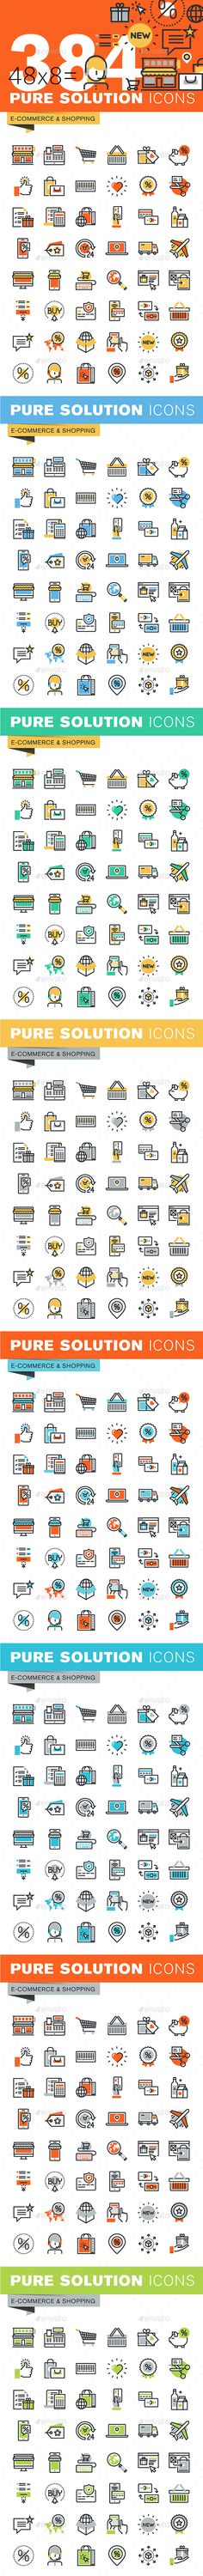 Set of Thin Line Flat Design Icons of E-Commerce and Shopping. Download here: http://graphicriver.net/item/set-of-thin-line-flat-design-icons-of-ecommerce-and-shopping/14788278?ref=ksioks